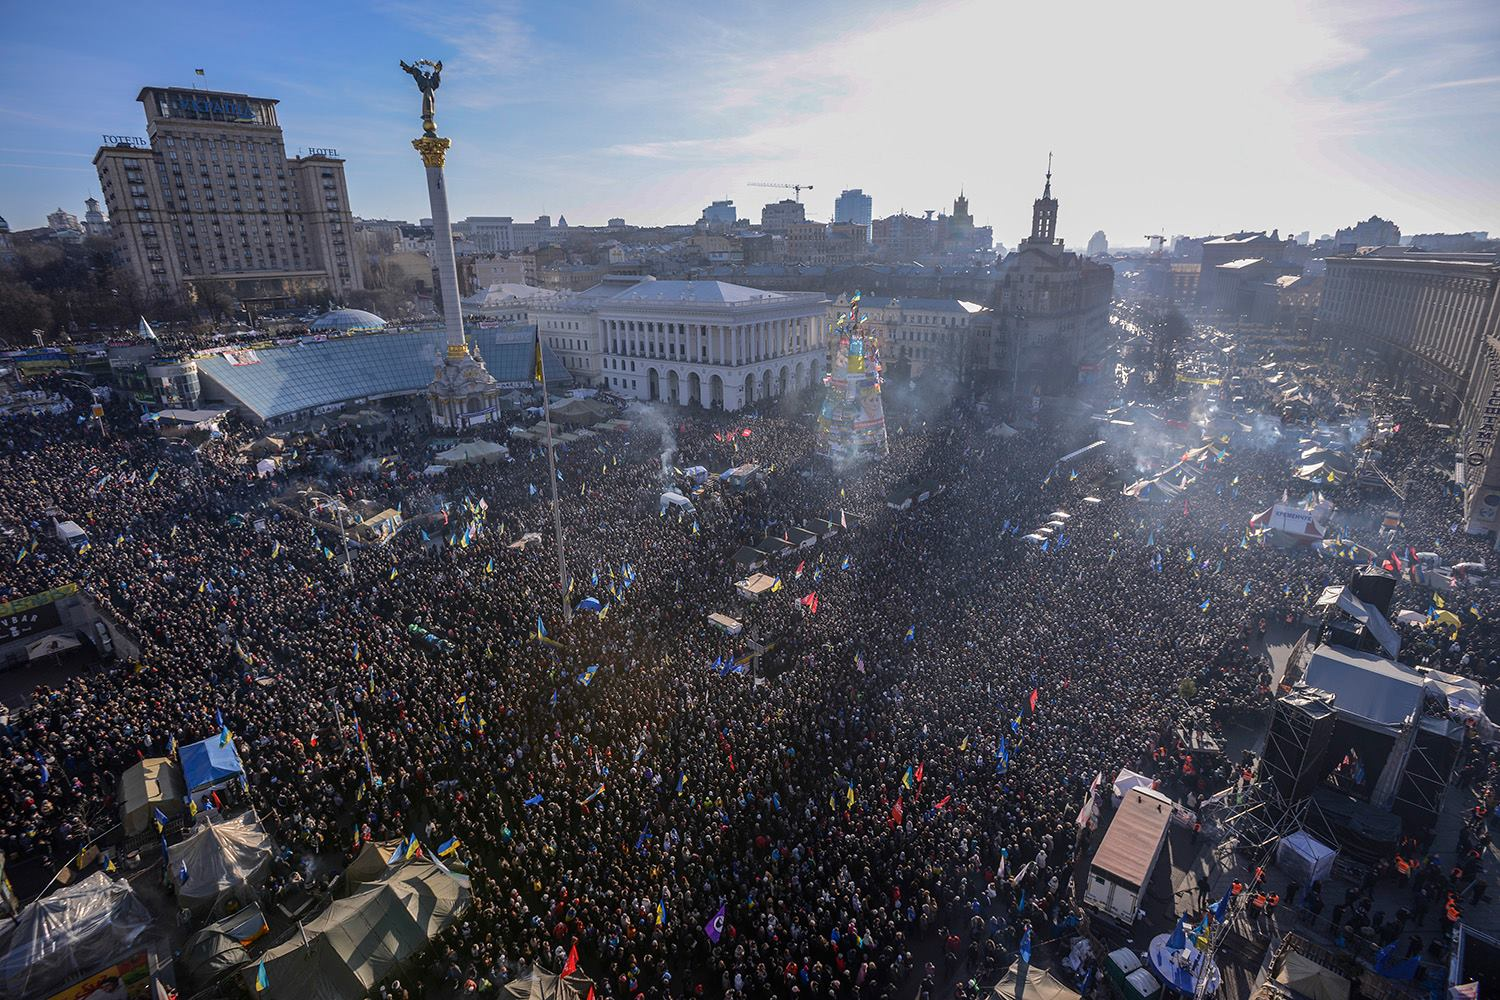 Euromaidan or Revolution of dignity